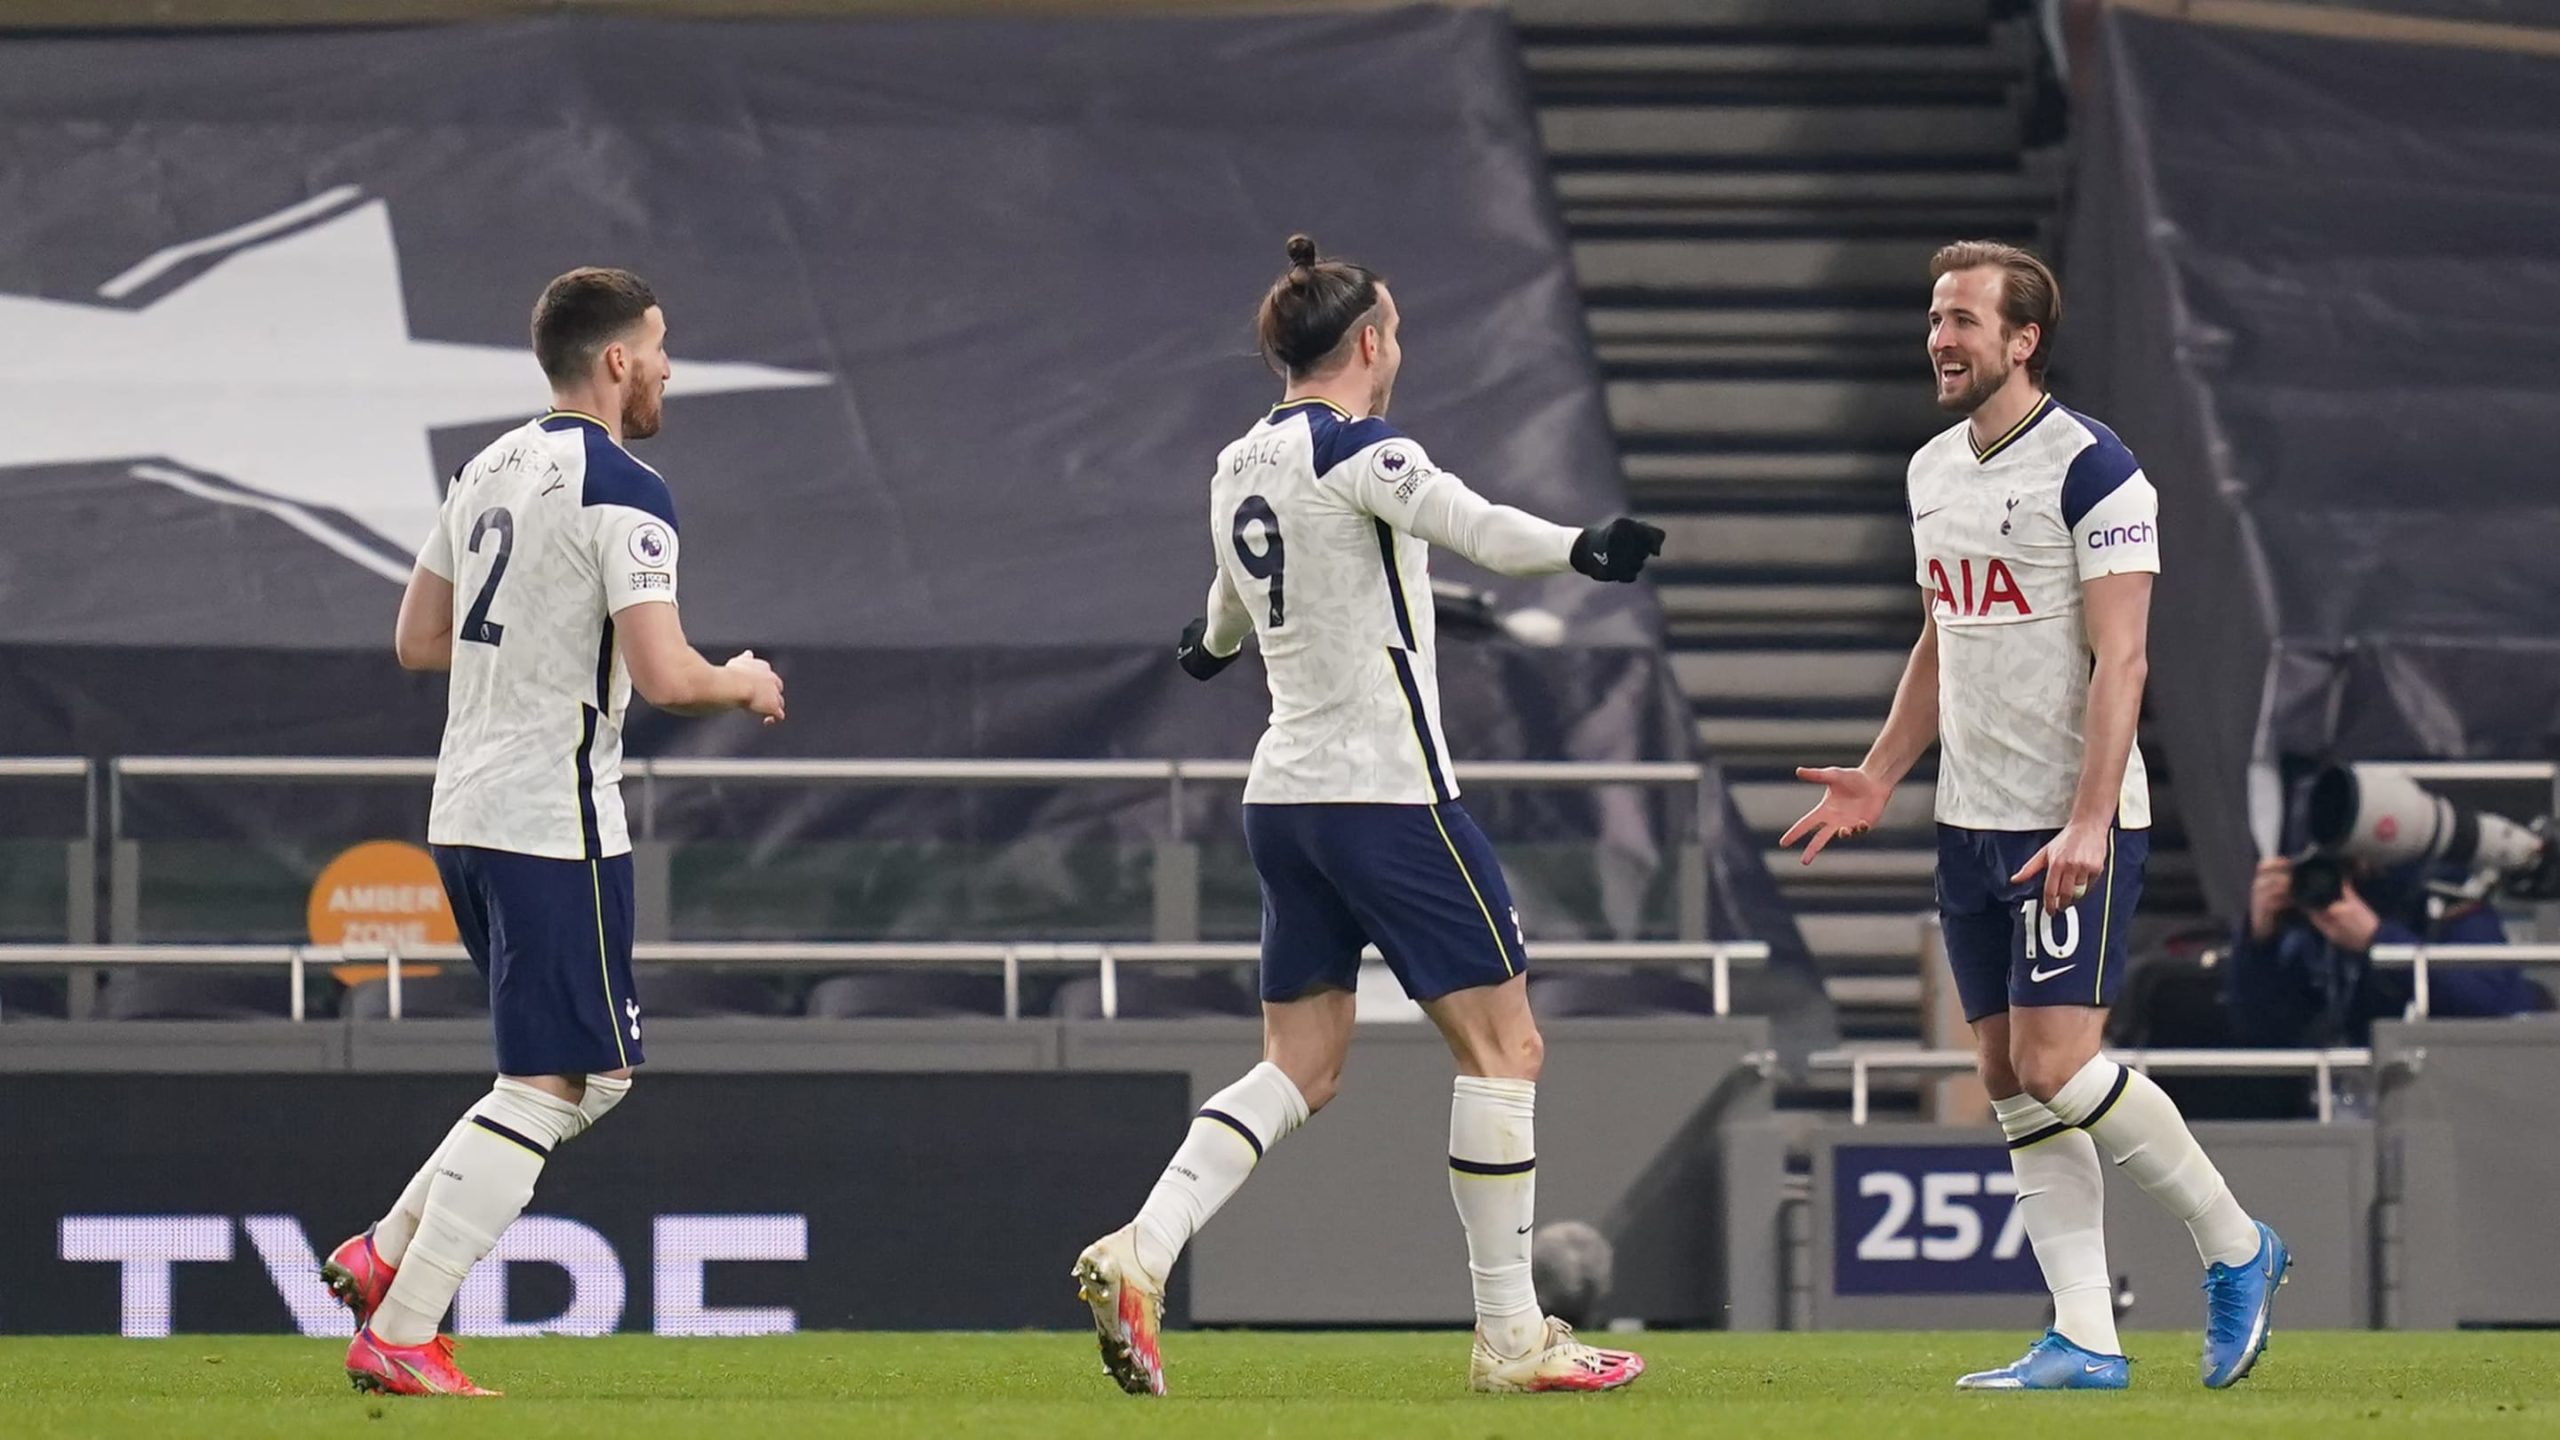 tottenham-4-1-crystal-palace-participant-ratings-as-spurs-slide-insurrection.jpg